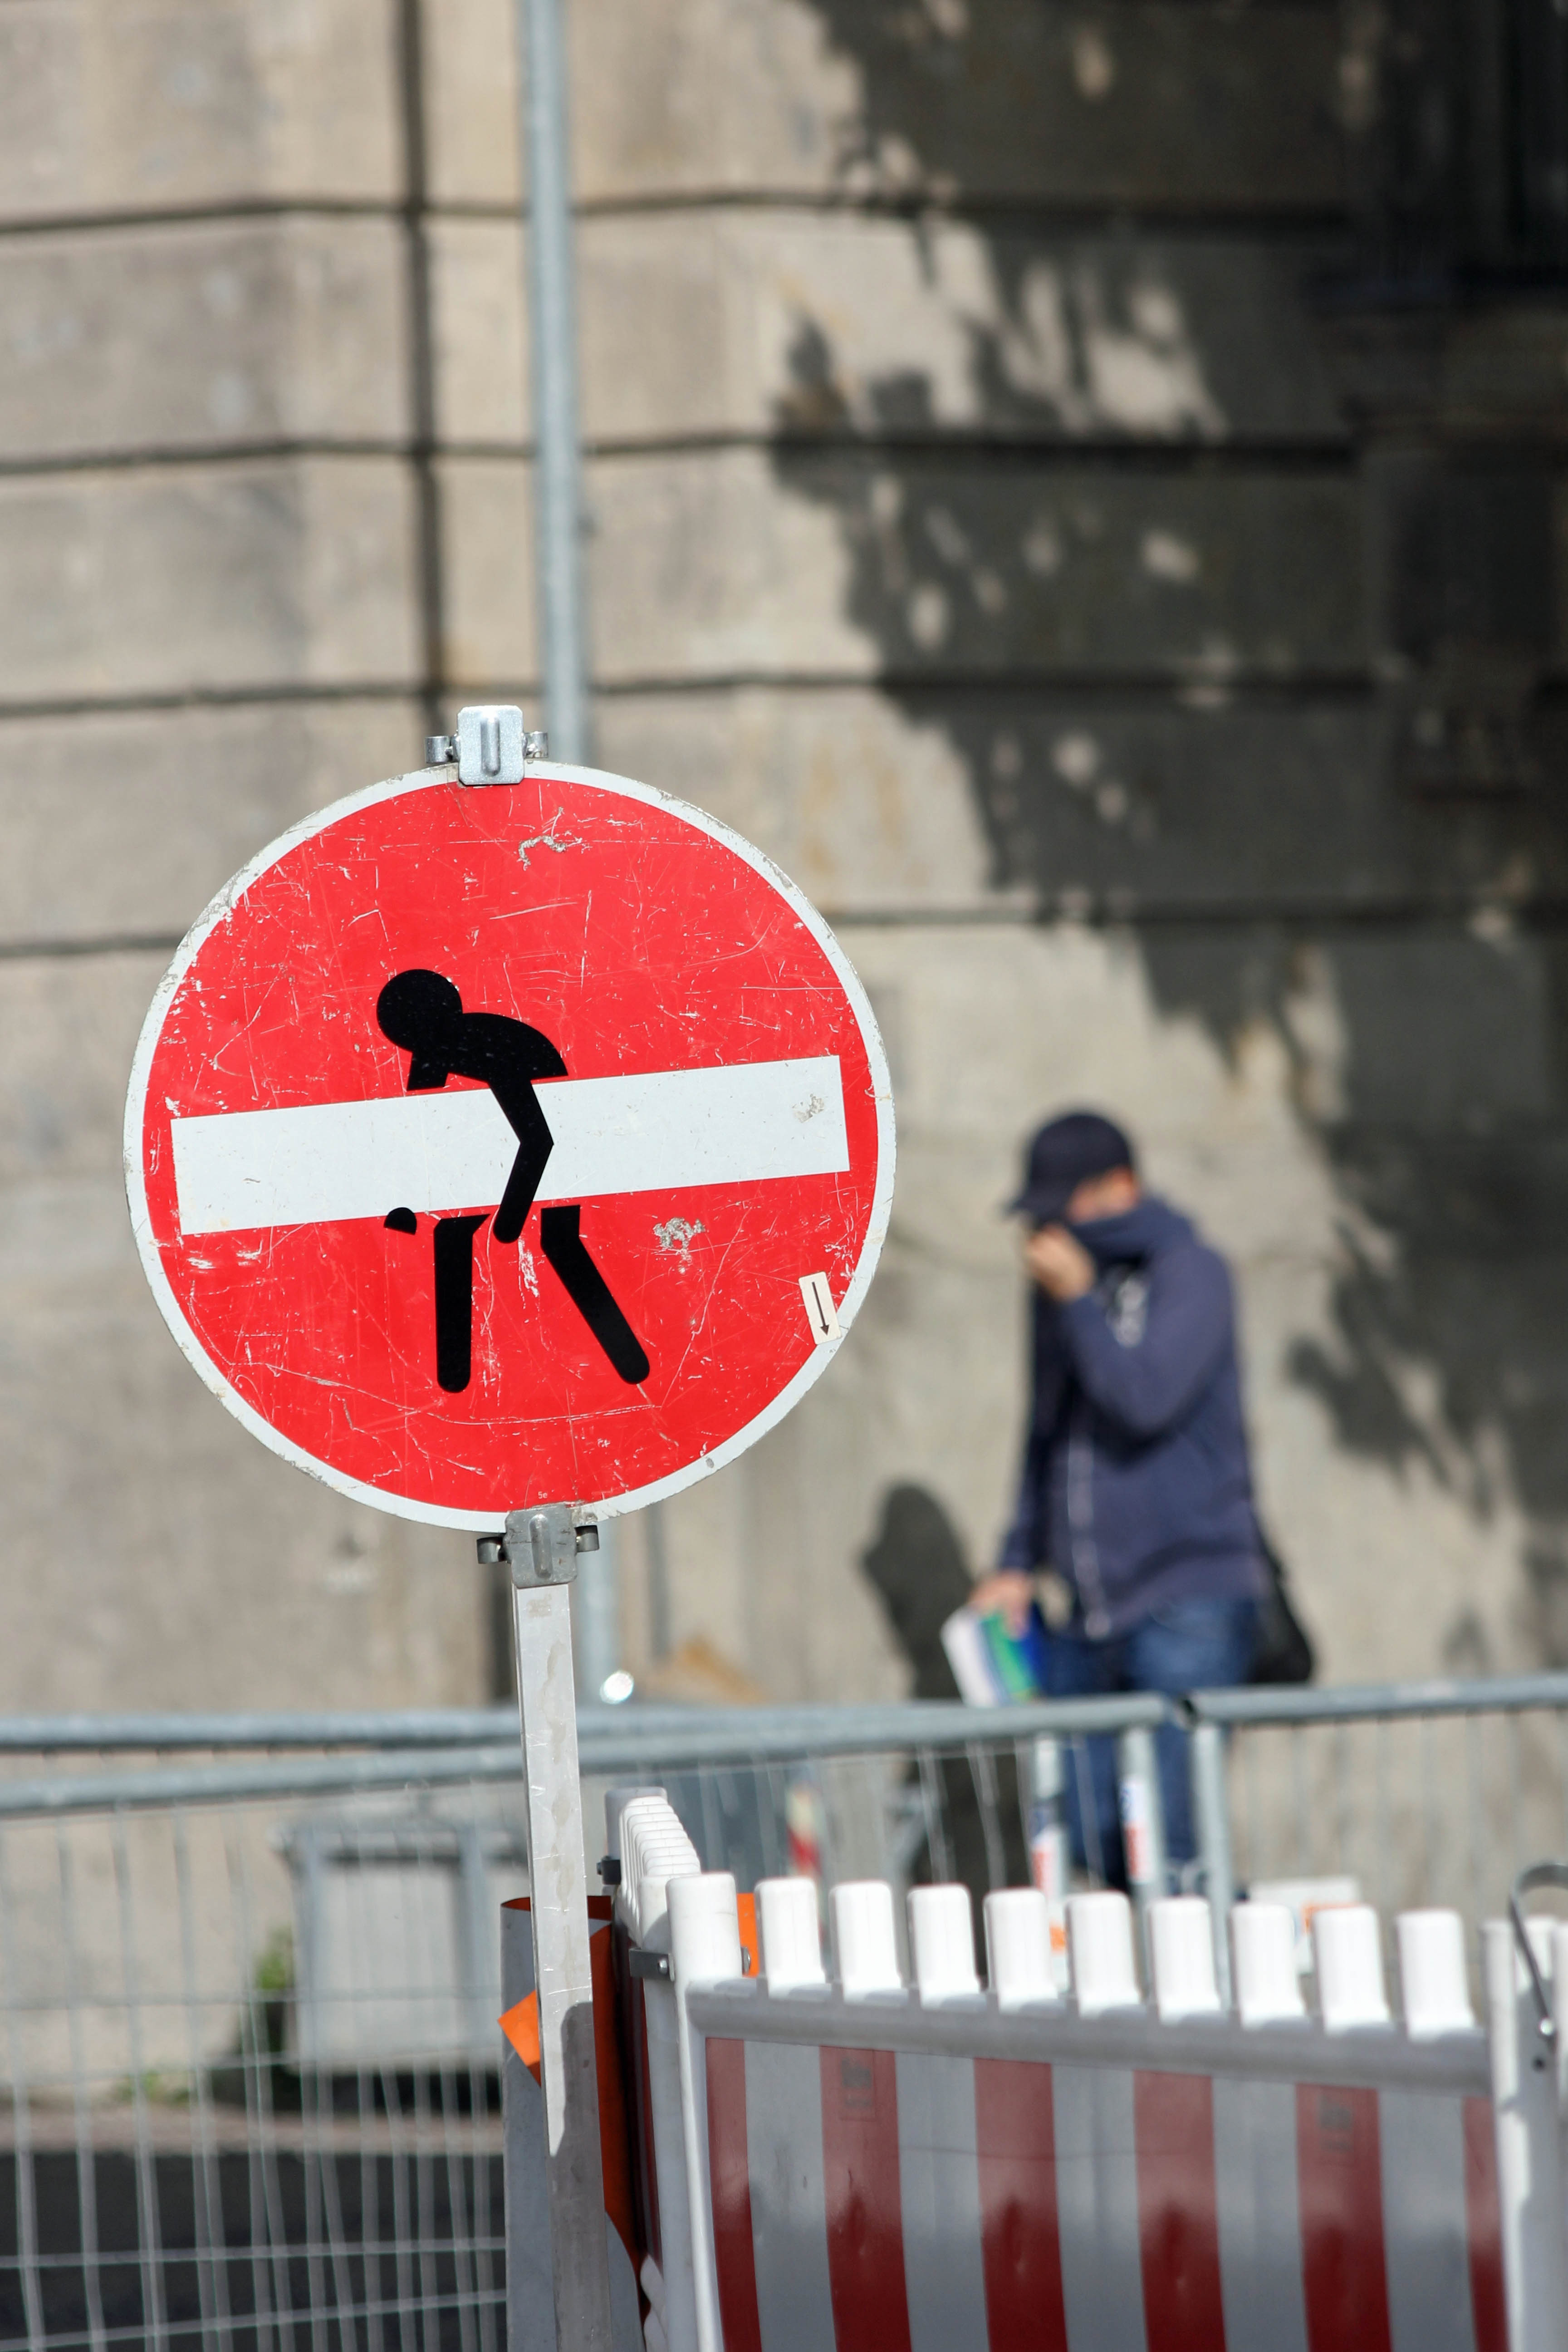 Stop…Carry On - Street Art by CLET (Clet Abraham) on a No Entry street sign in Berlin